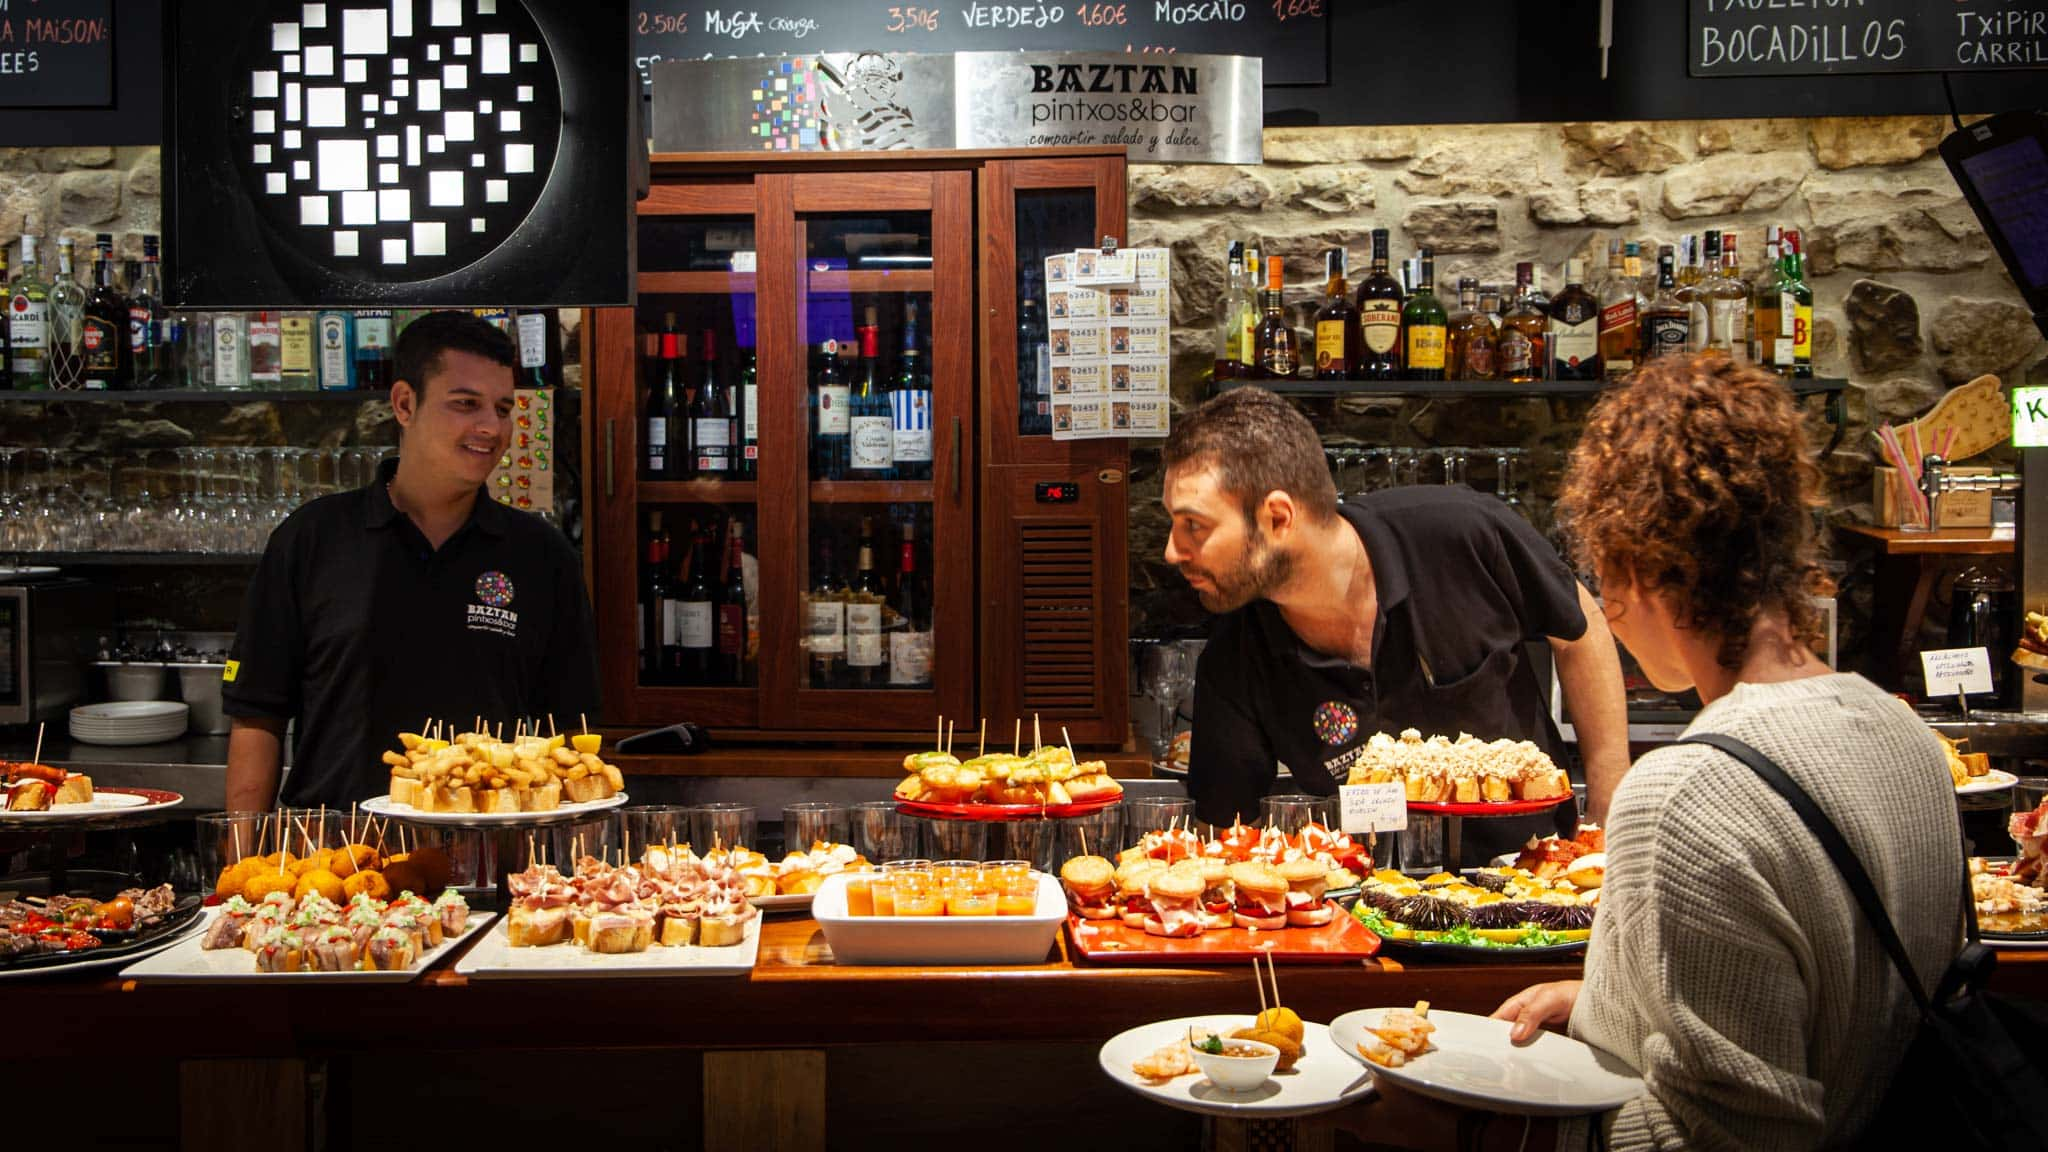 Helping yourself to Pintxos on a bar in San Helping yourself to Pintxos on a bar in San Sebatsian